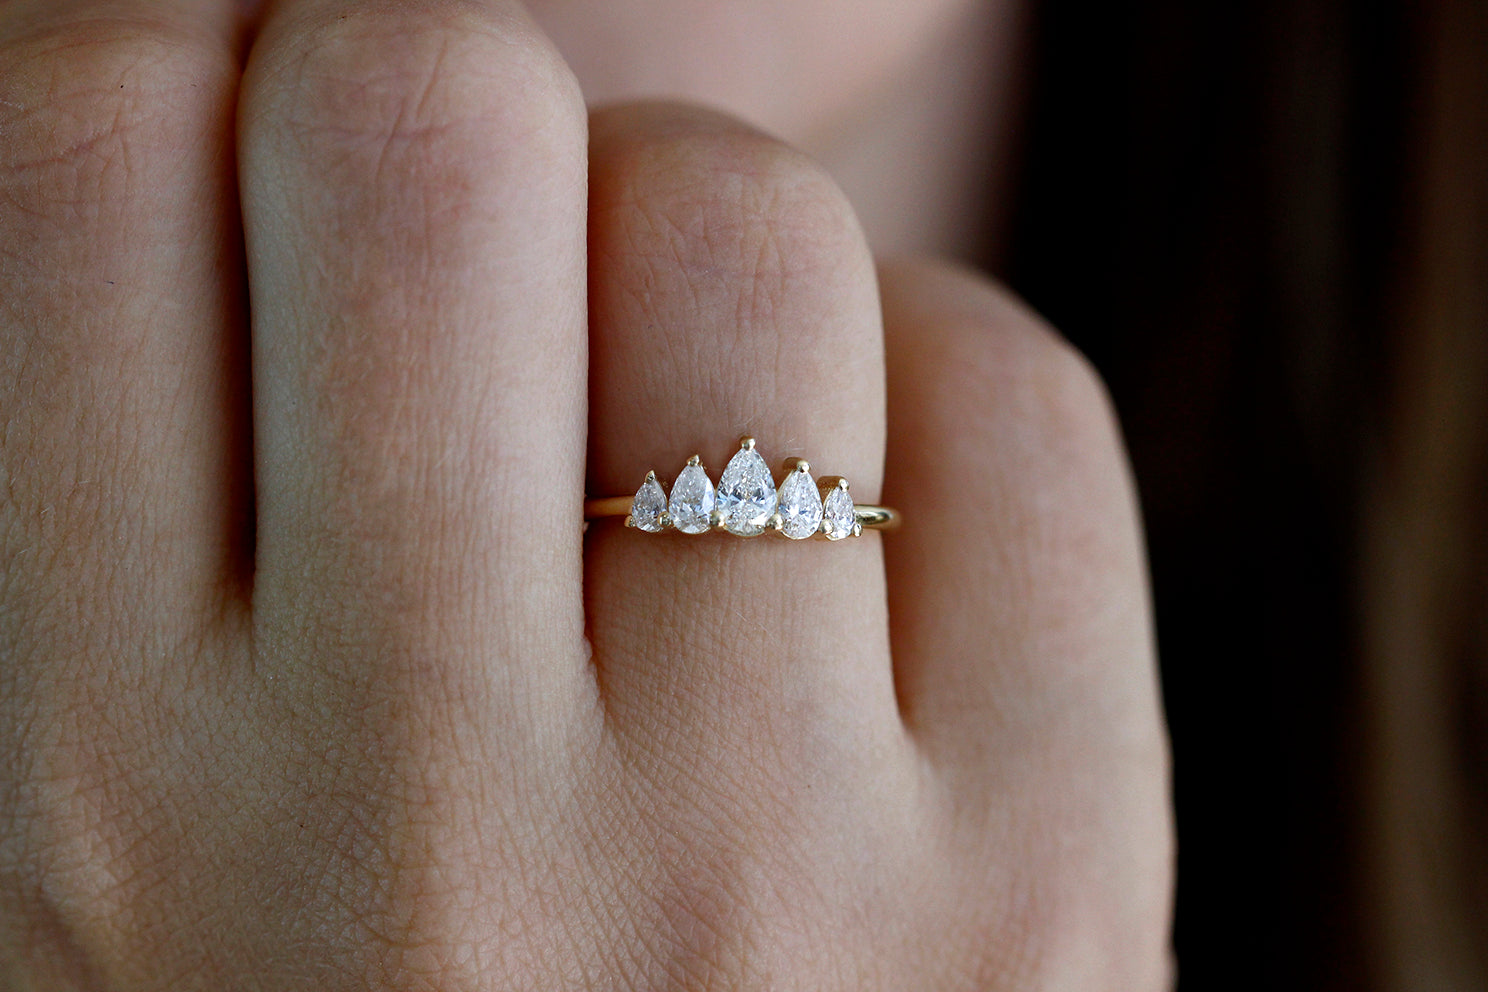 Unique Pear Diamond Engagement Ring On Finger